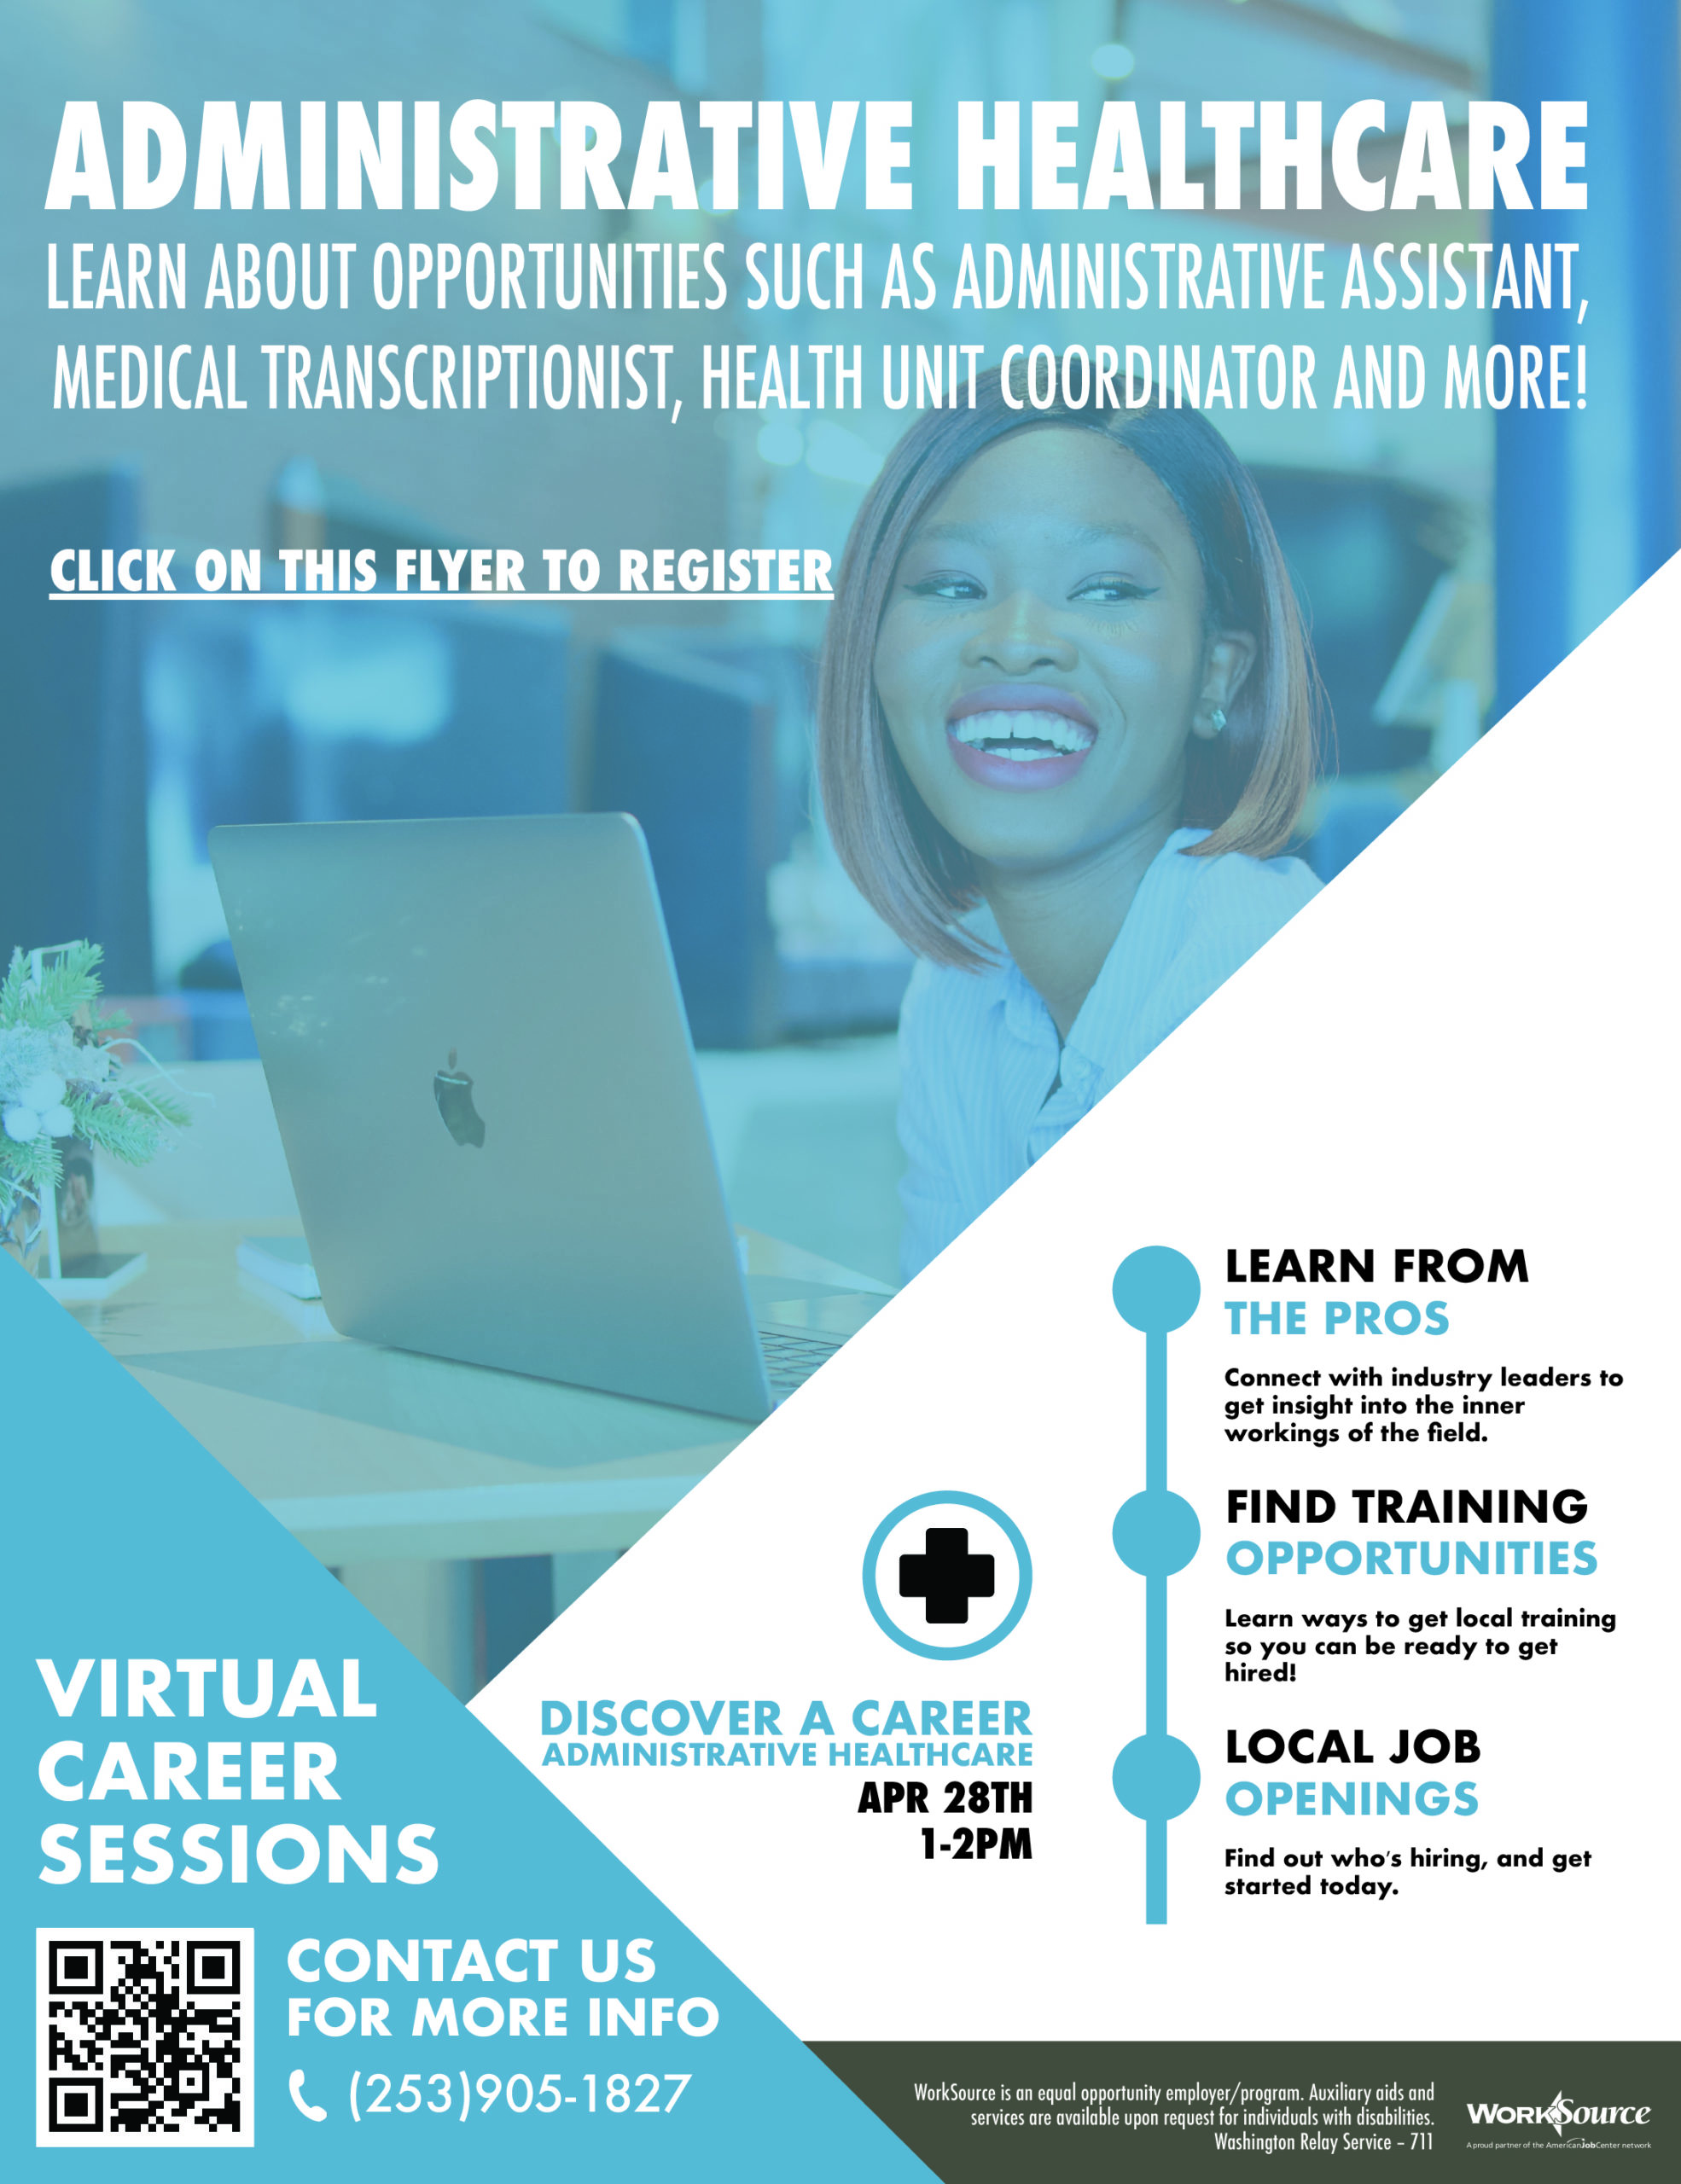 Administrative Healthcare Career Boost - April 28th 1